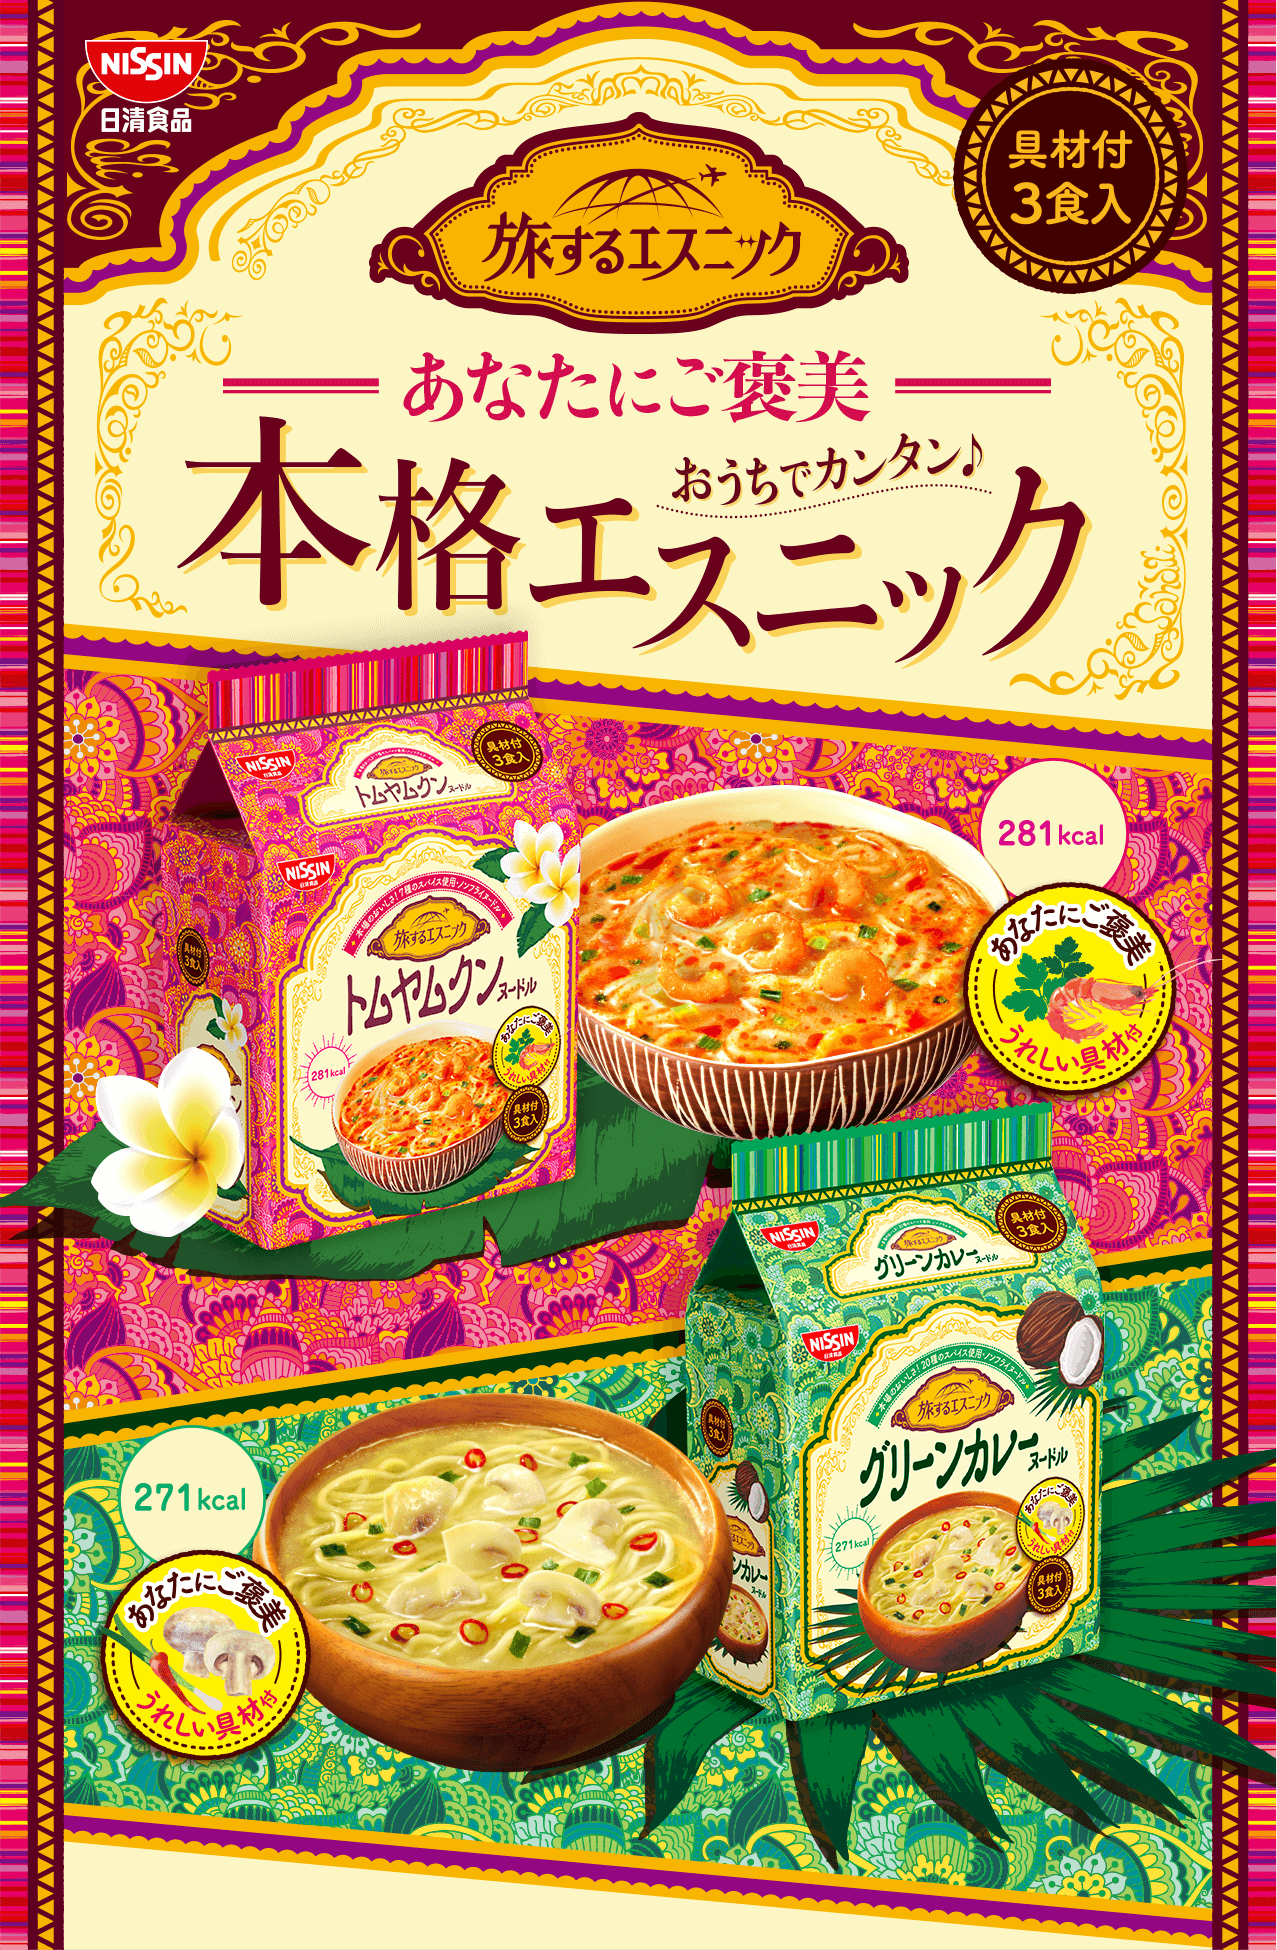 nissin-0454.png